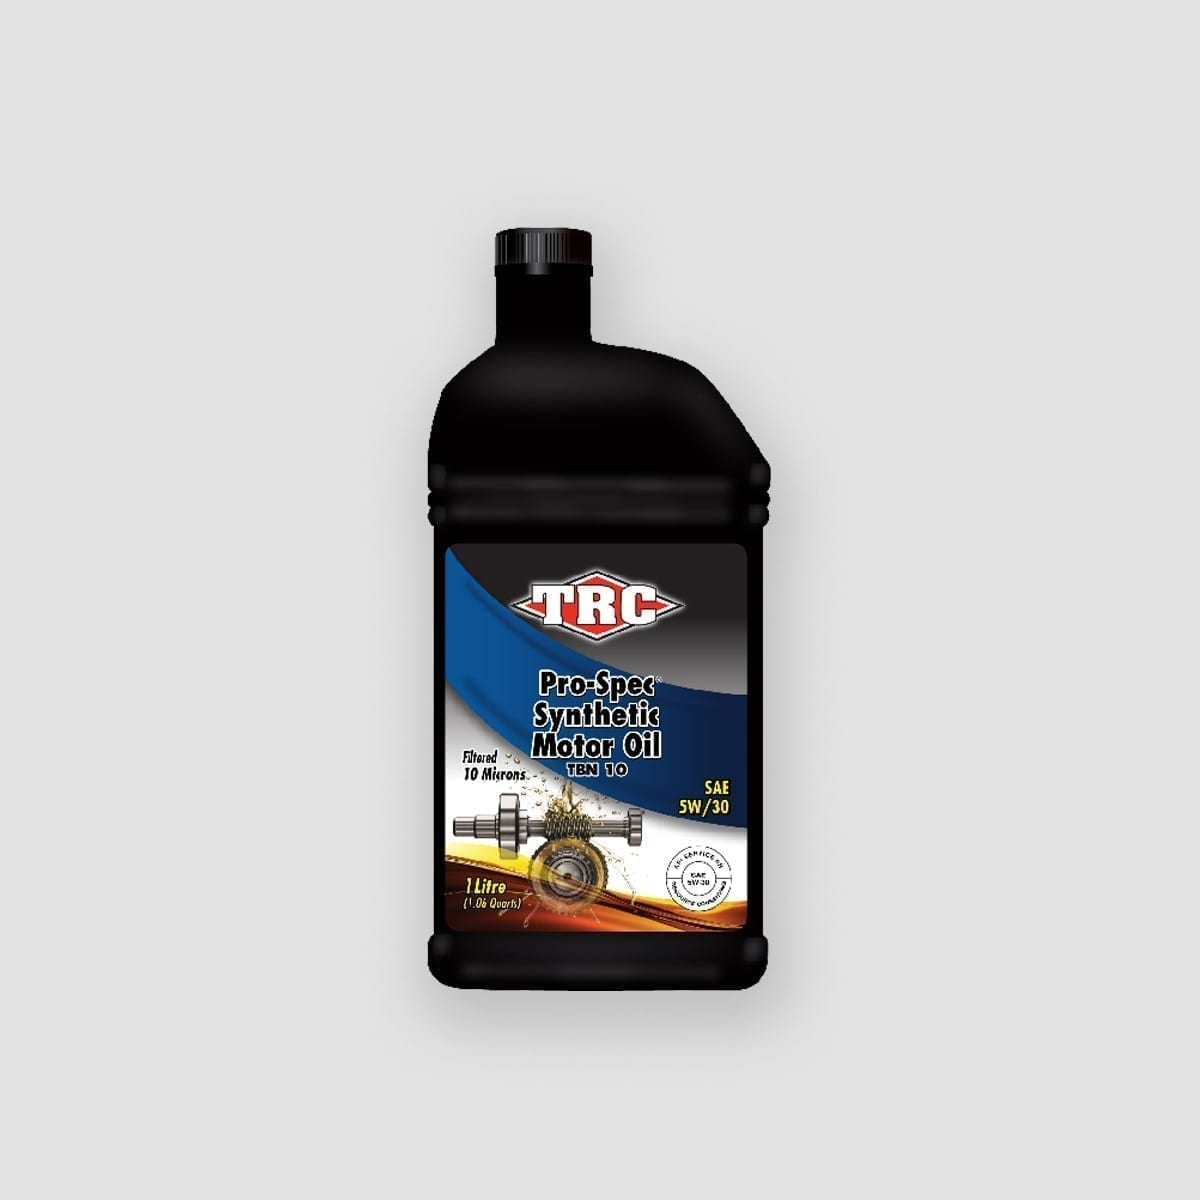 trc-pro-spec-synthetic-motor-oil-5w-30-01